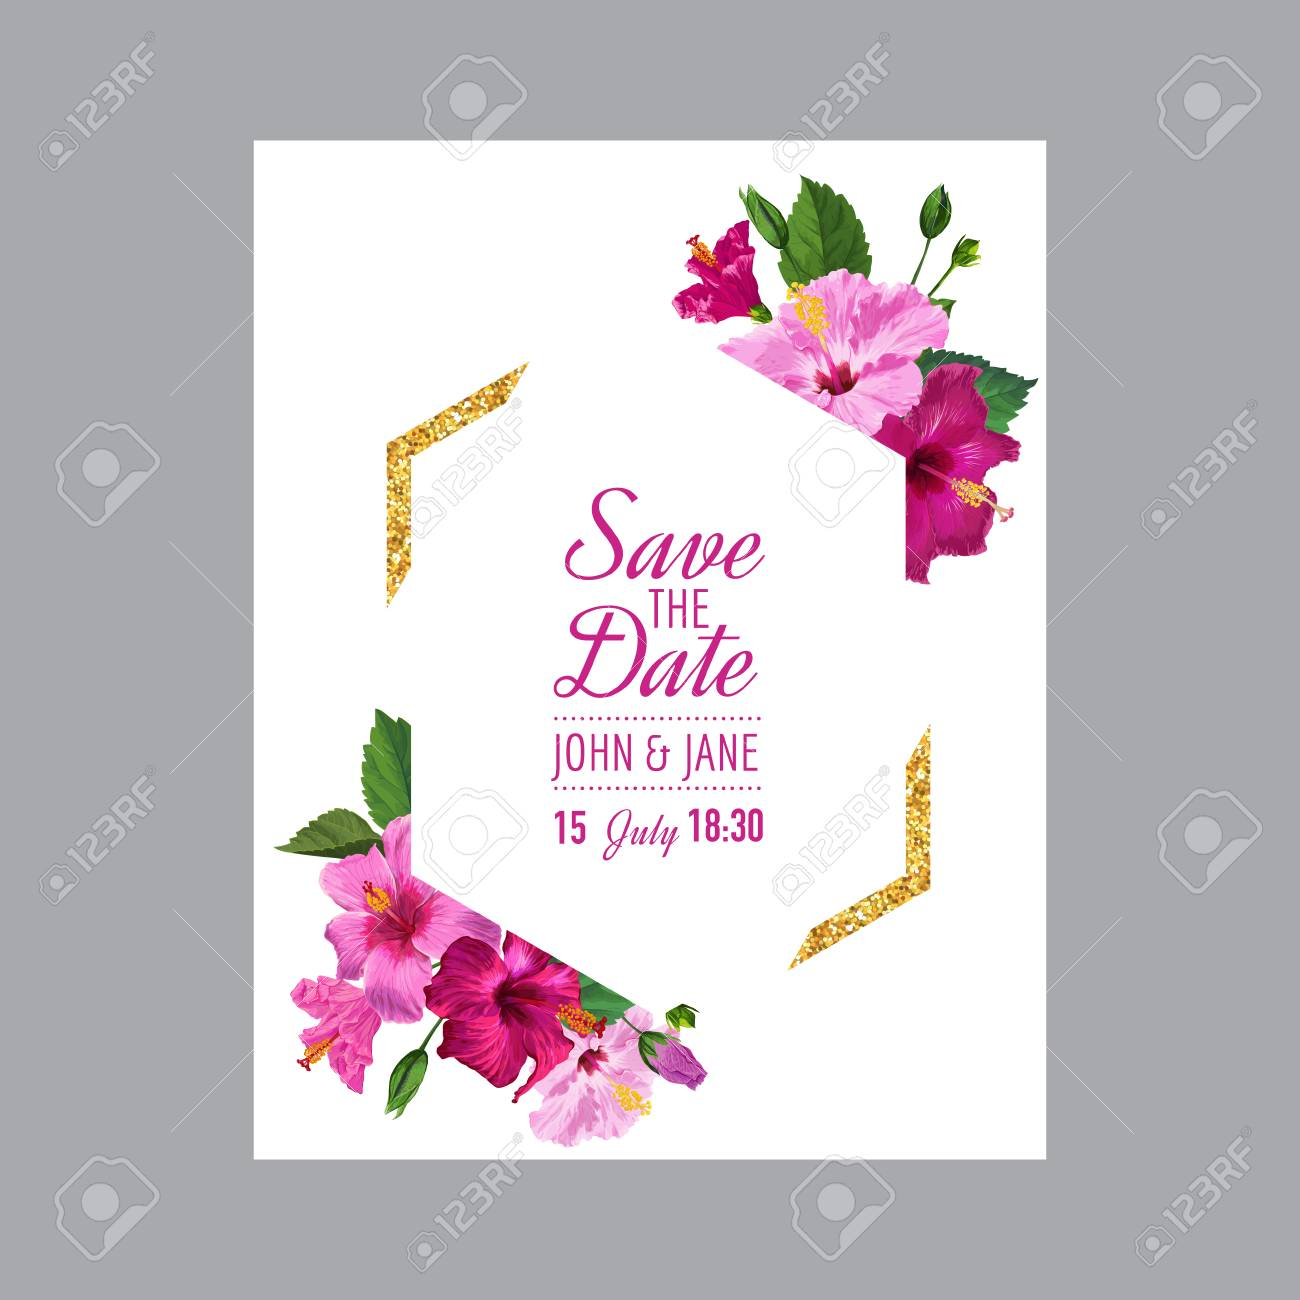 Wedding Invitation Template With Blooming Hibiscus Flowers And